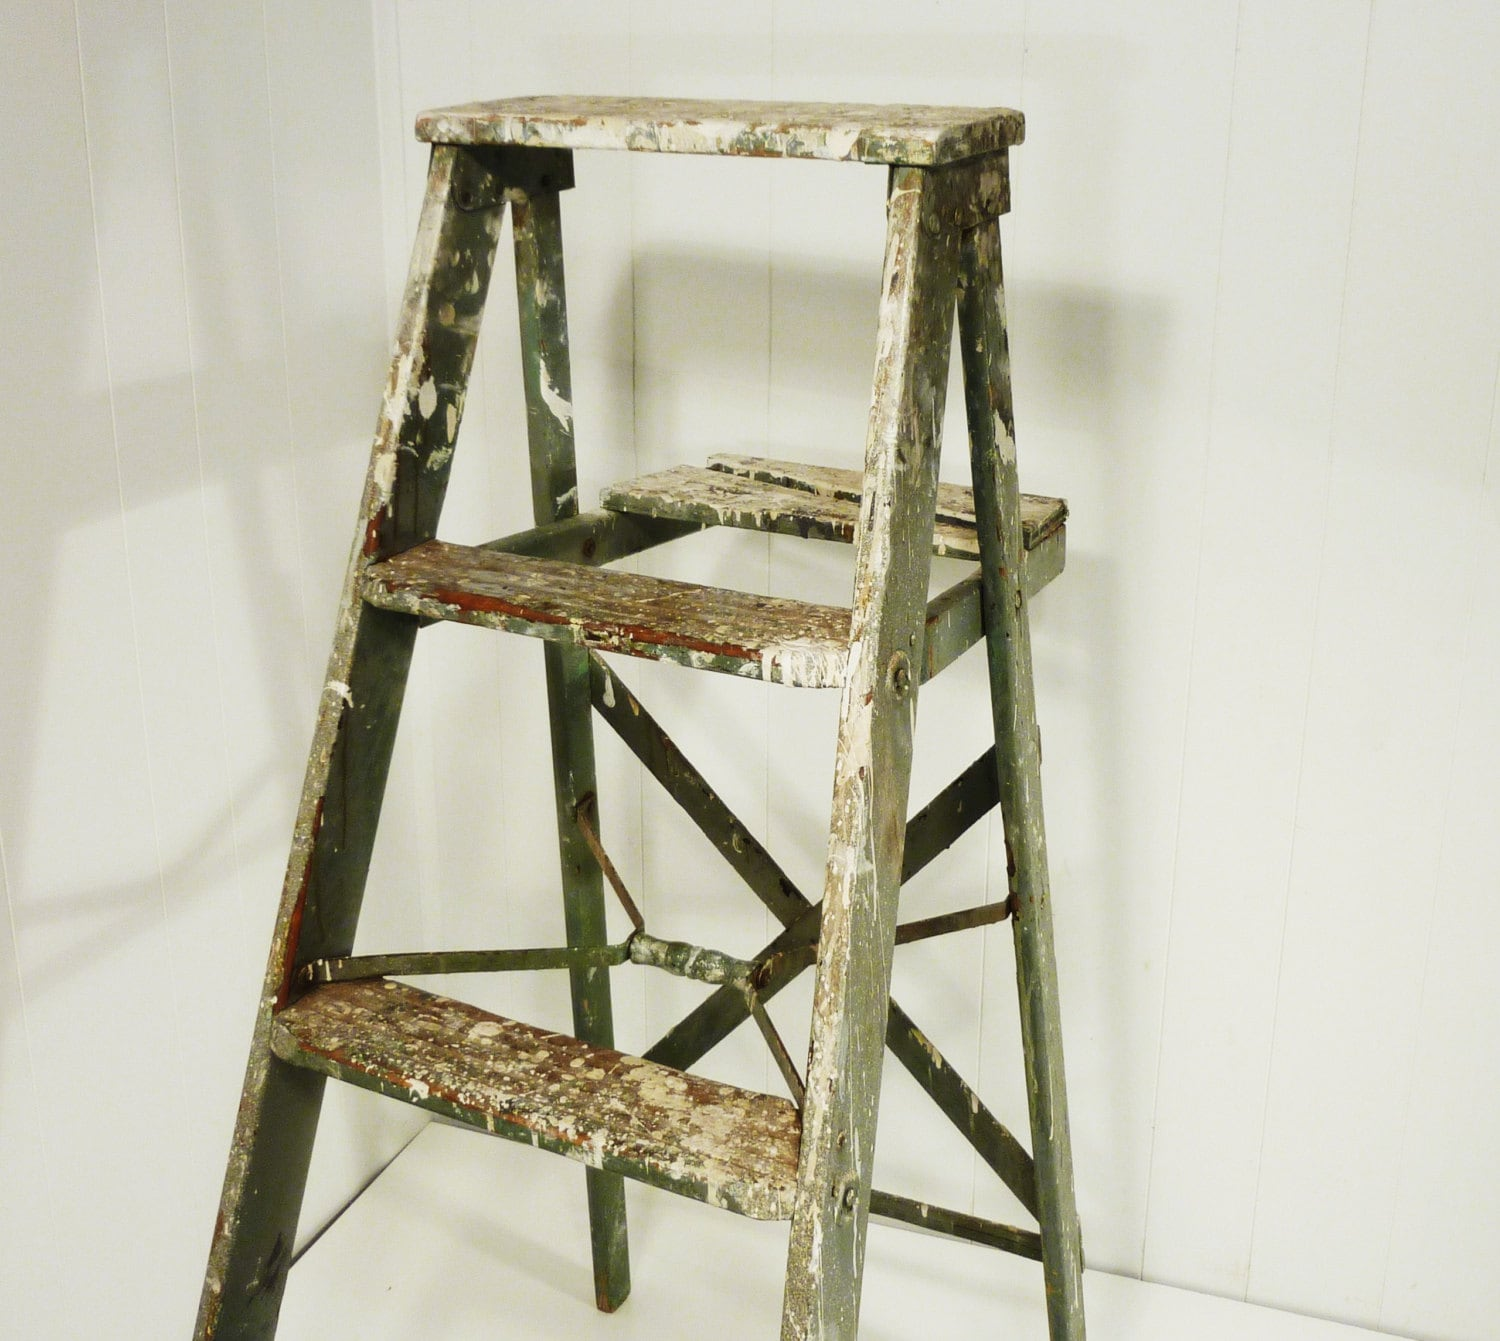 Vintage Splashy Paint Wooden Step Ladder Step Stool